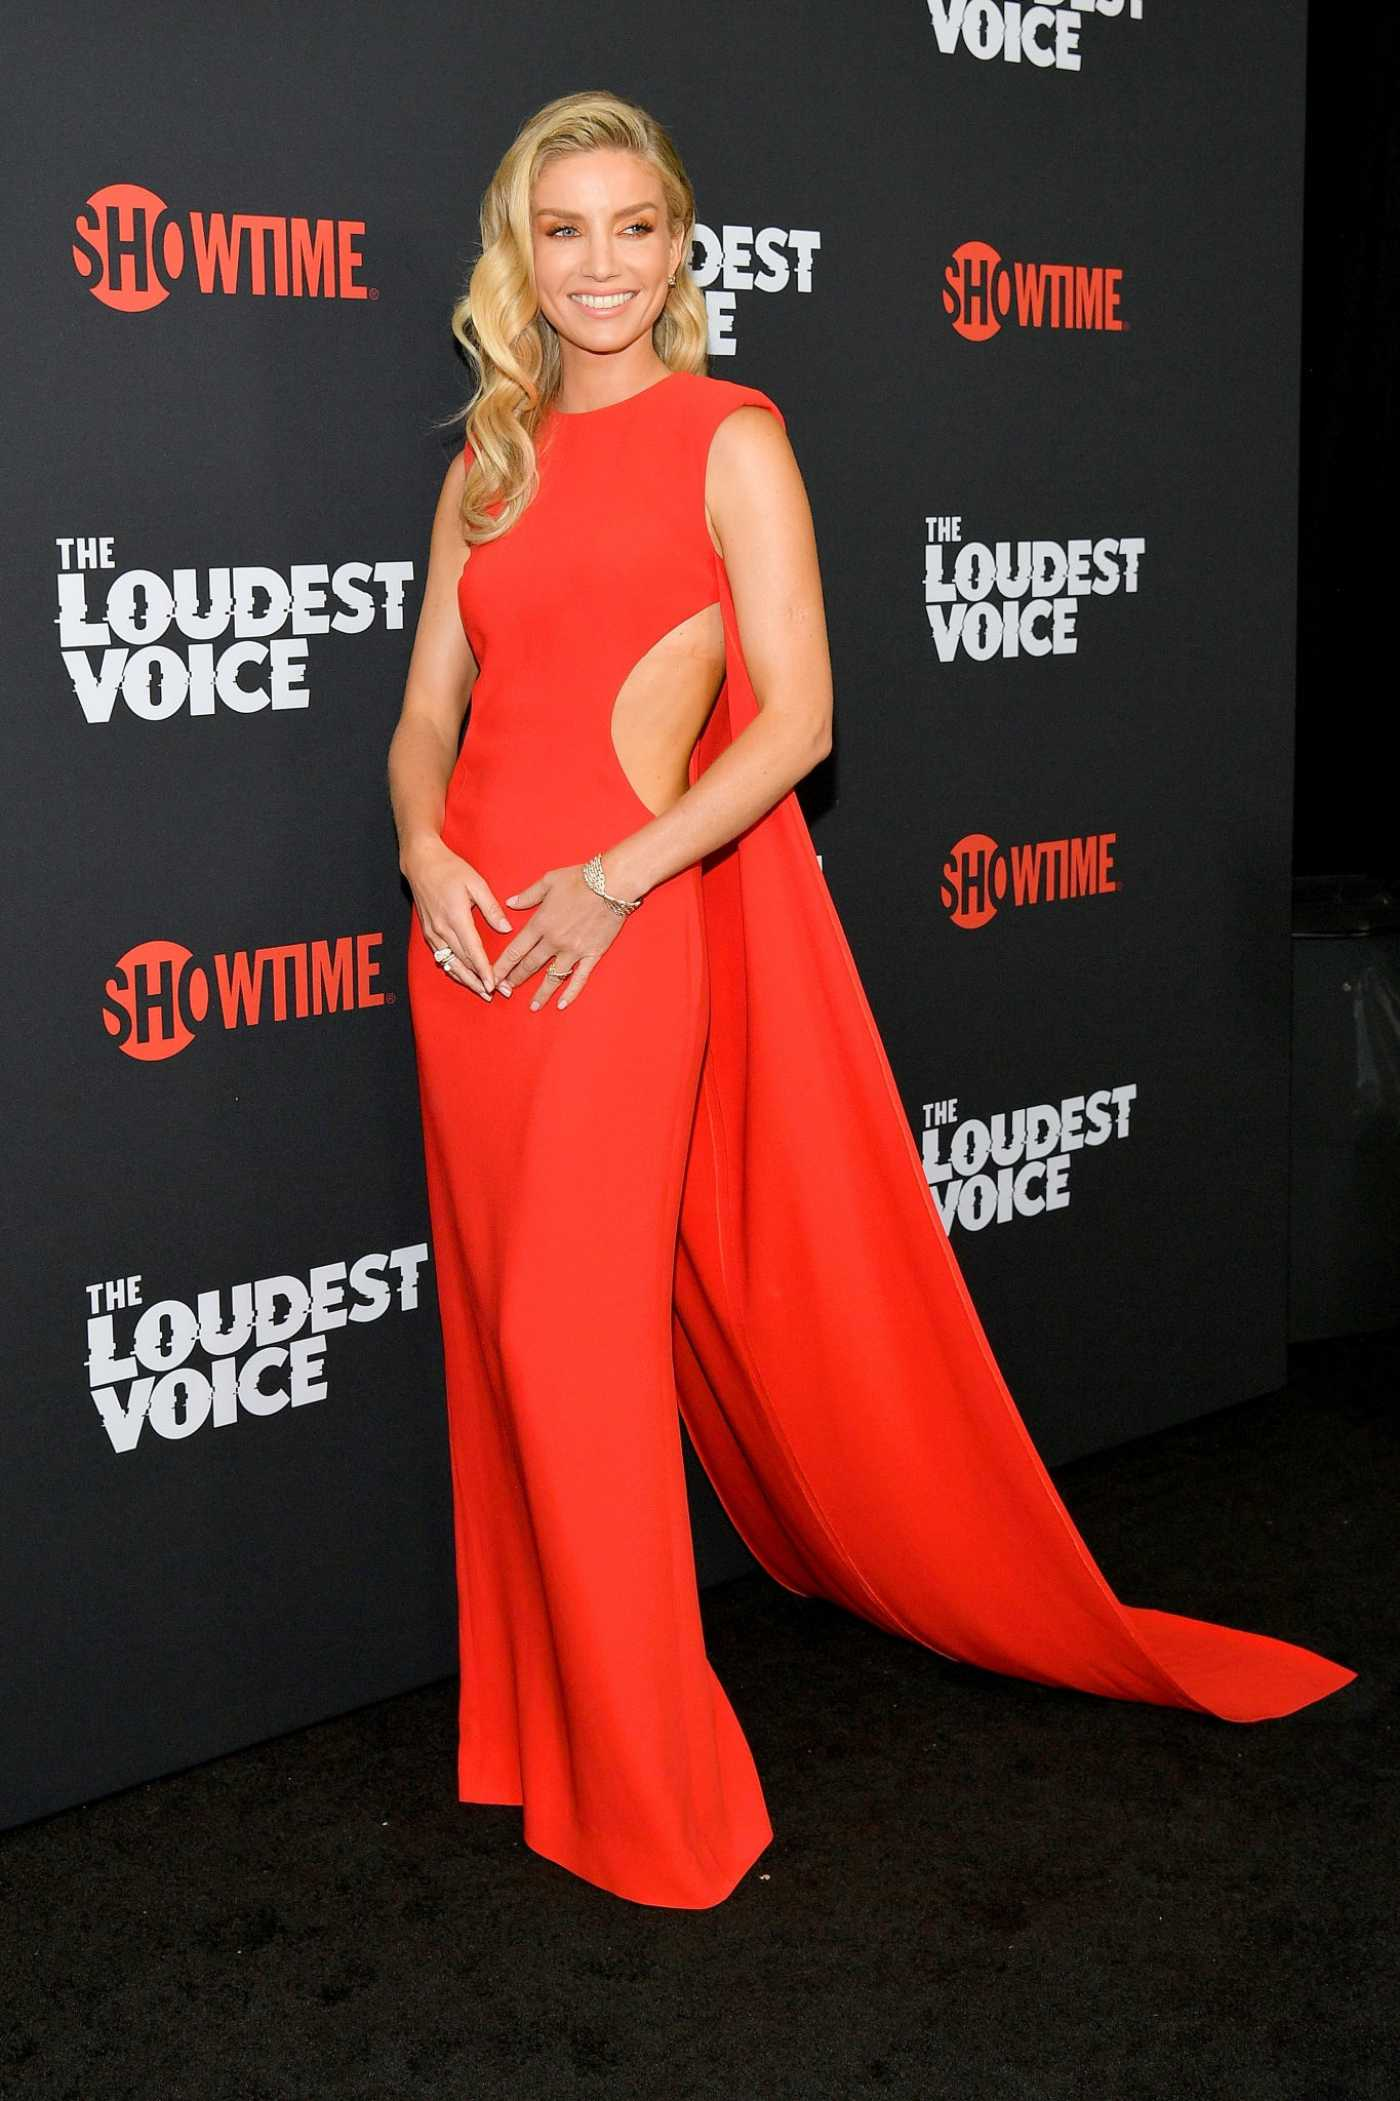 Annabelle Wallis Attends The Loudest Voice Premiere in New York City 06/24/2019